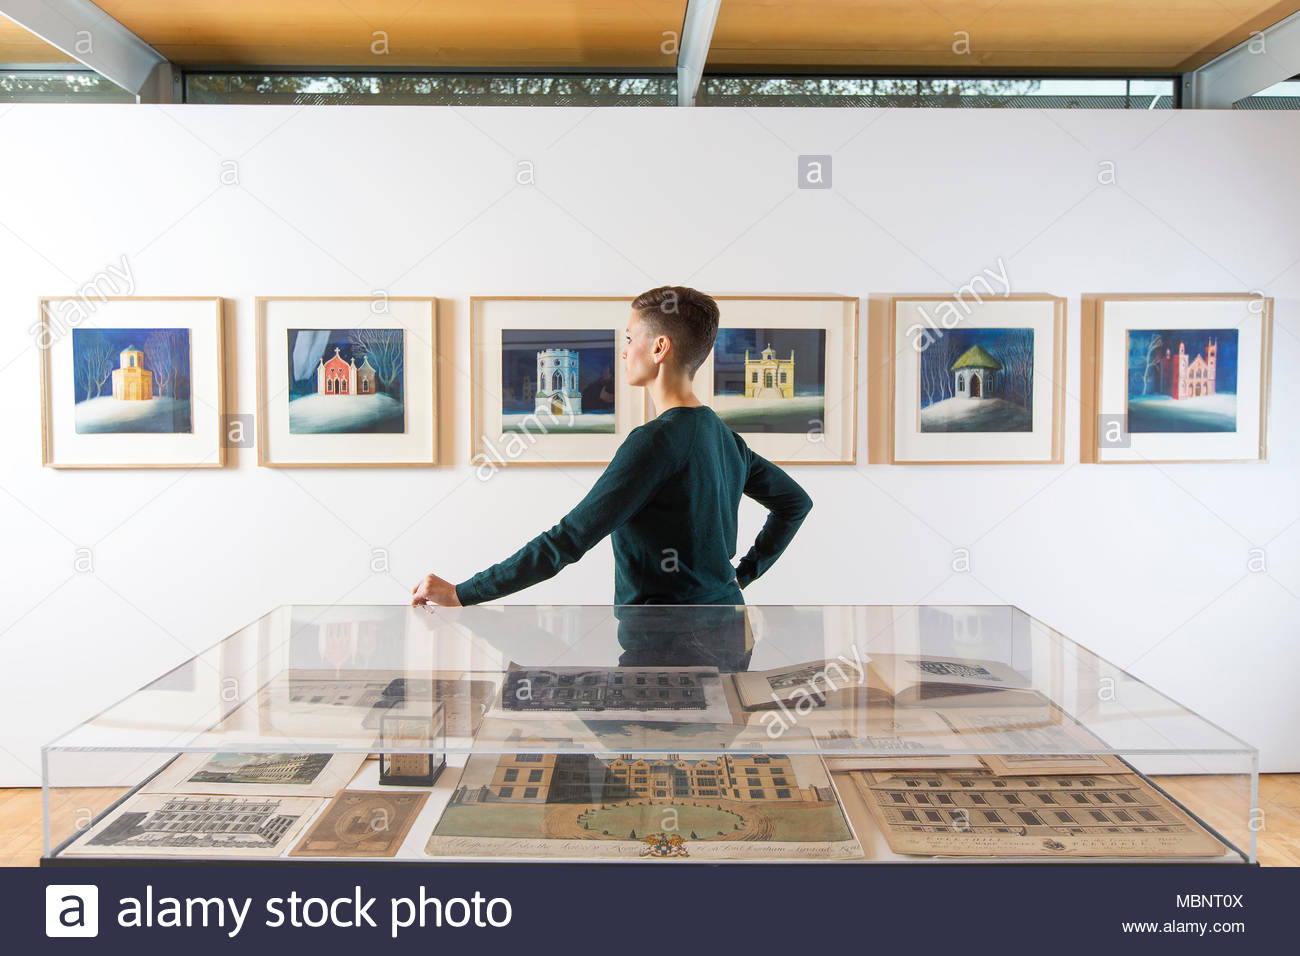 A visitor looks at the Ed Kluz exhibition ' Sheer Folly-Fancifull Buildings of Britain' at Yorkshire Sculpture park. - Stock Image